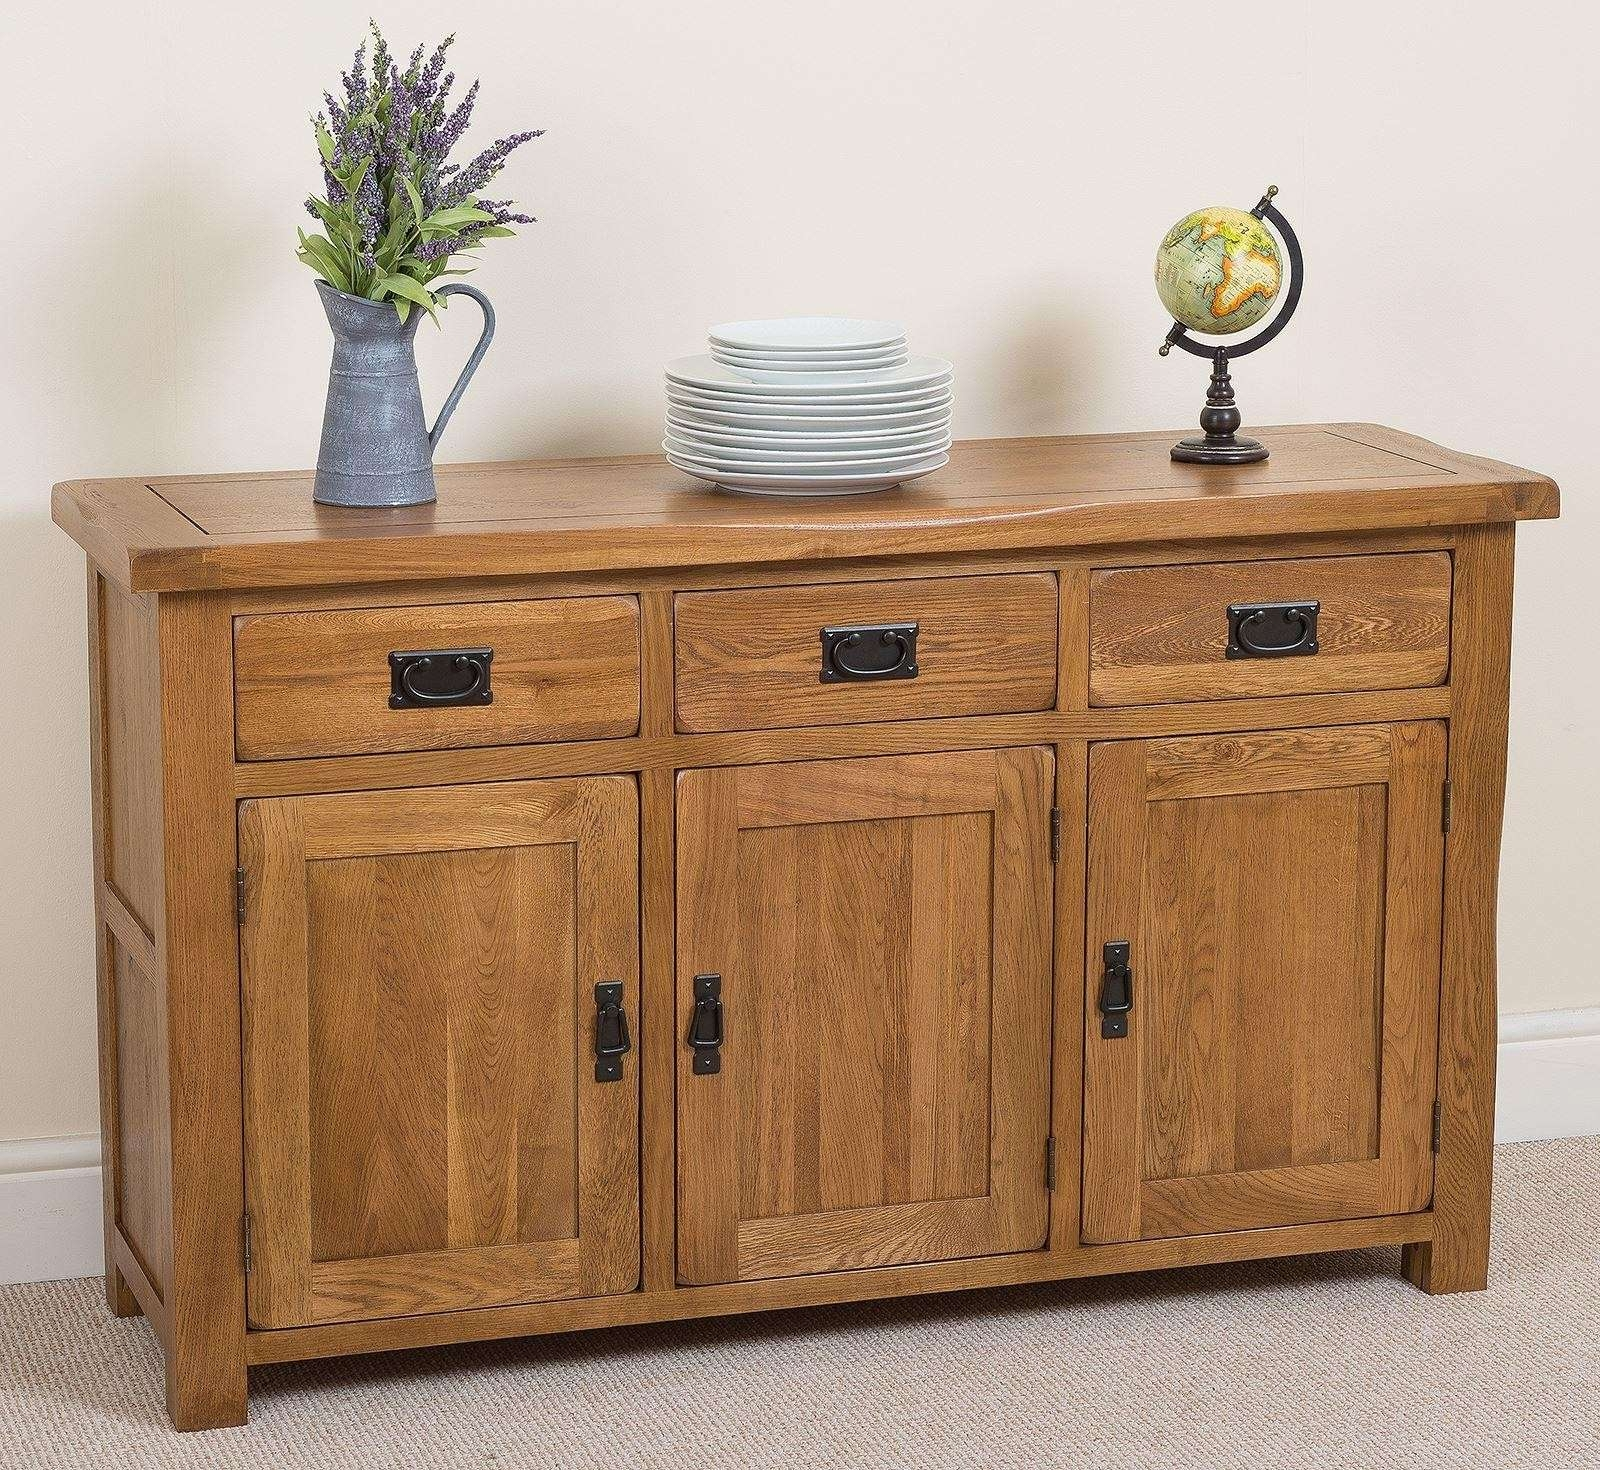 Cotswold Large Oak Sideboard | Free Uk Delivery With Rustic Sideboards (View 4 of 20)